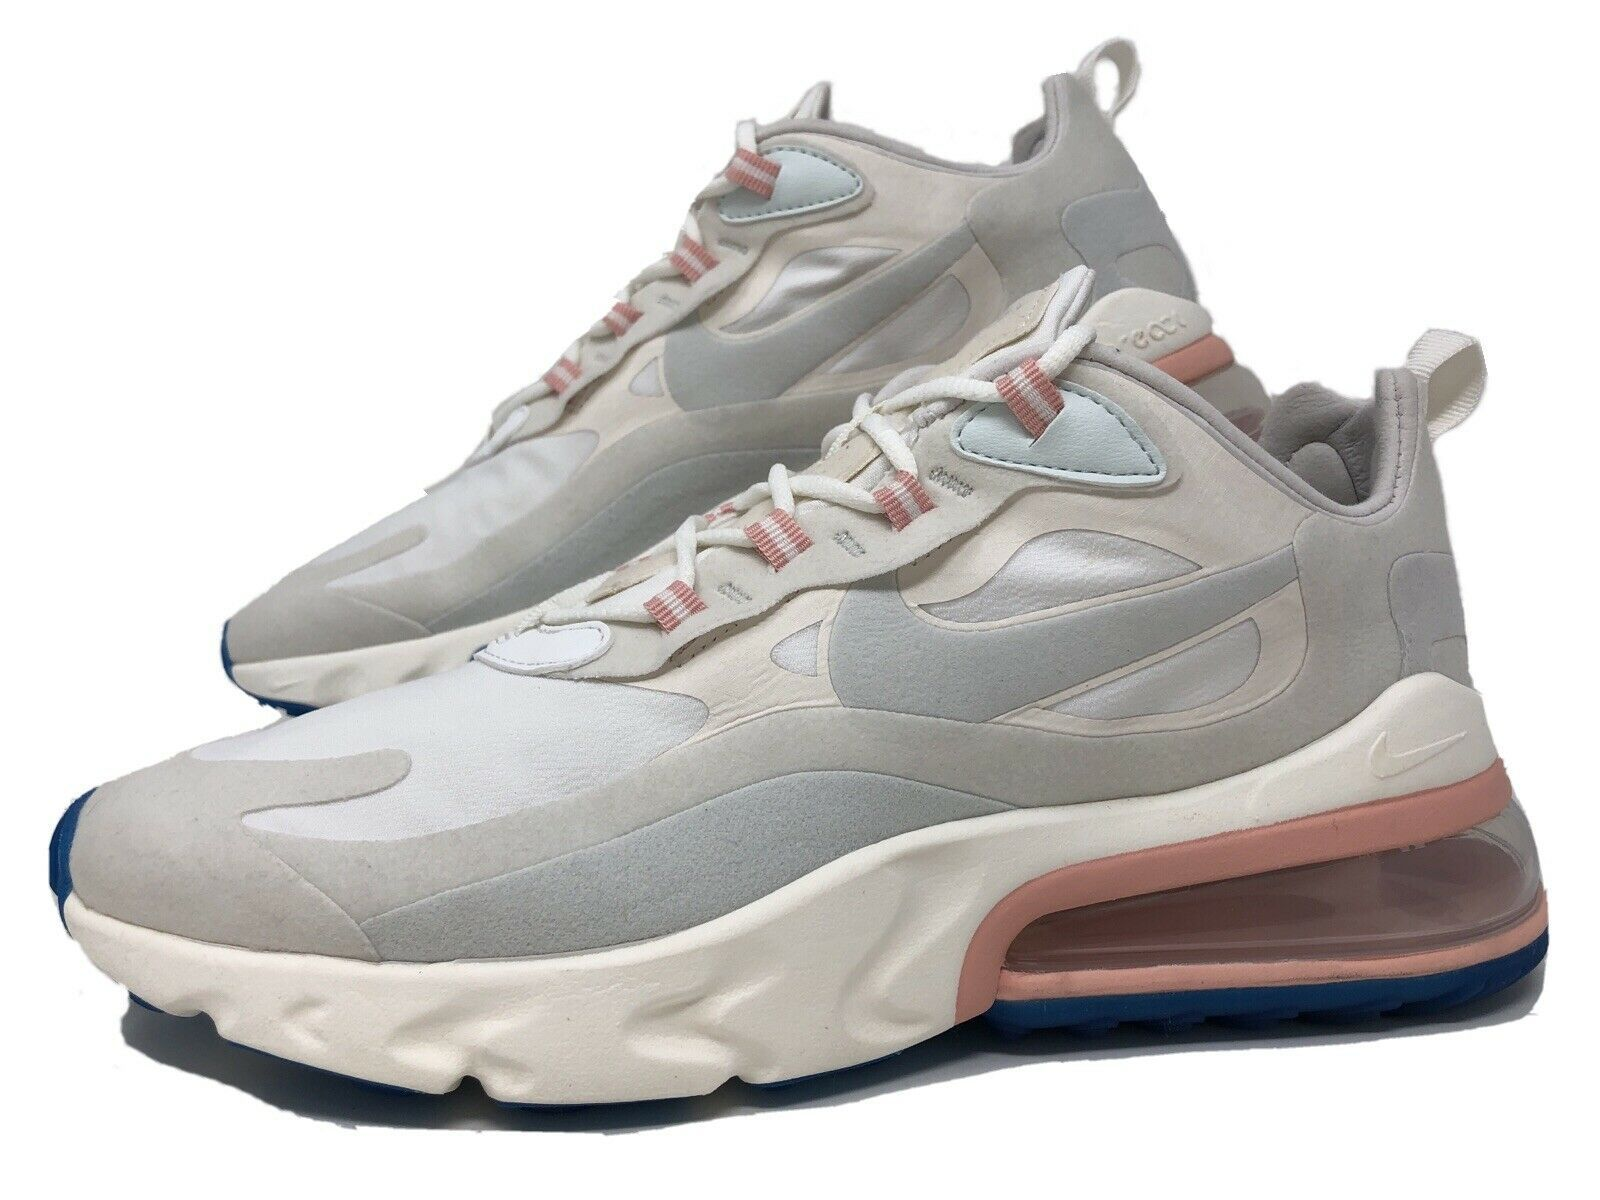 Primary image for Womens Nike Air Max 270 React White/Ghost Aqua Size 9.5 (Worn 2X) AT6174-100